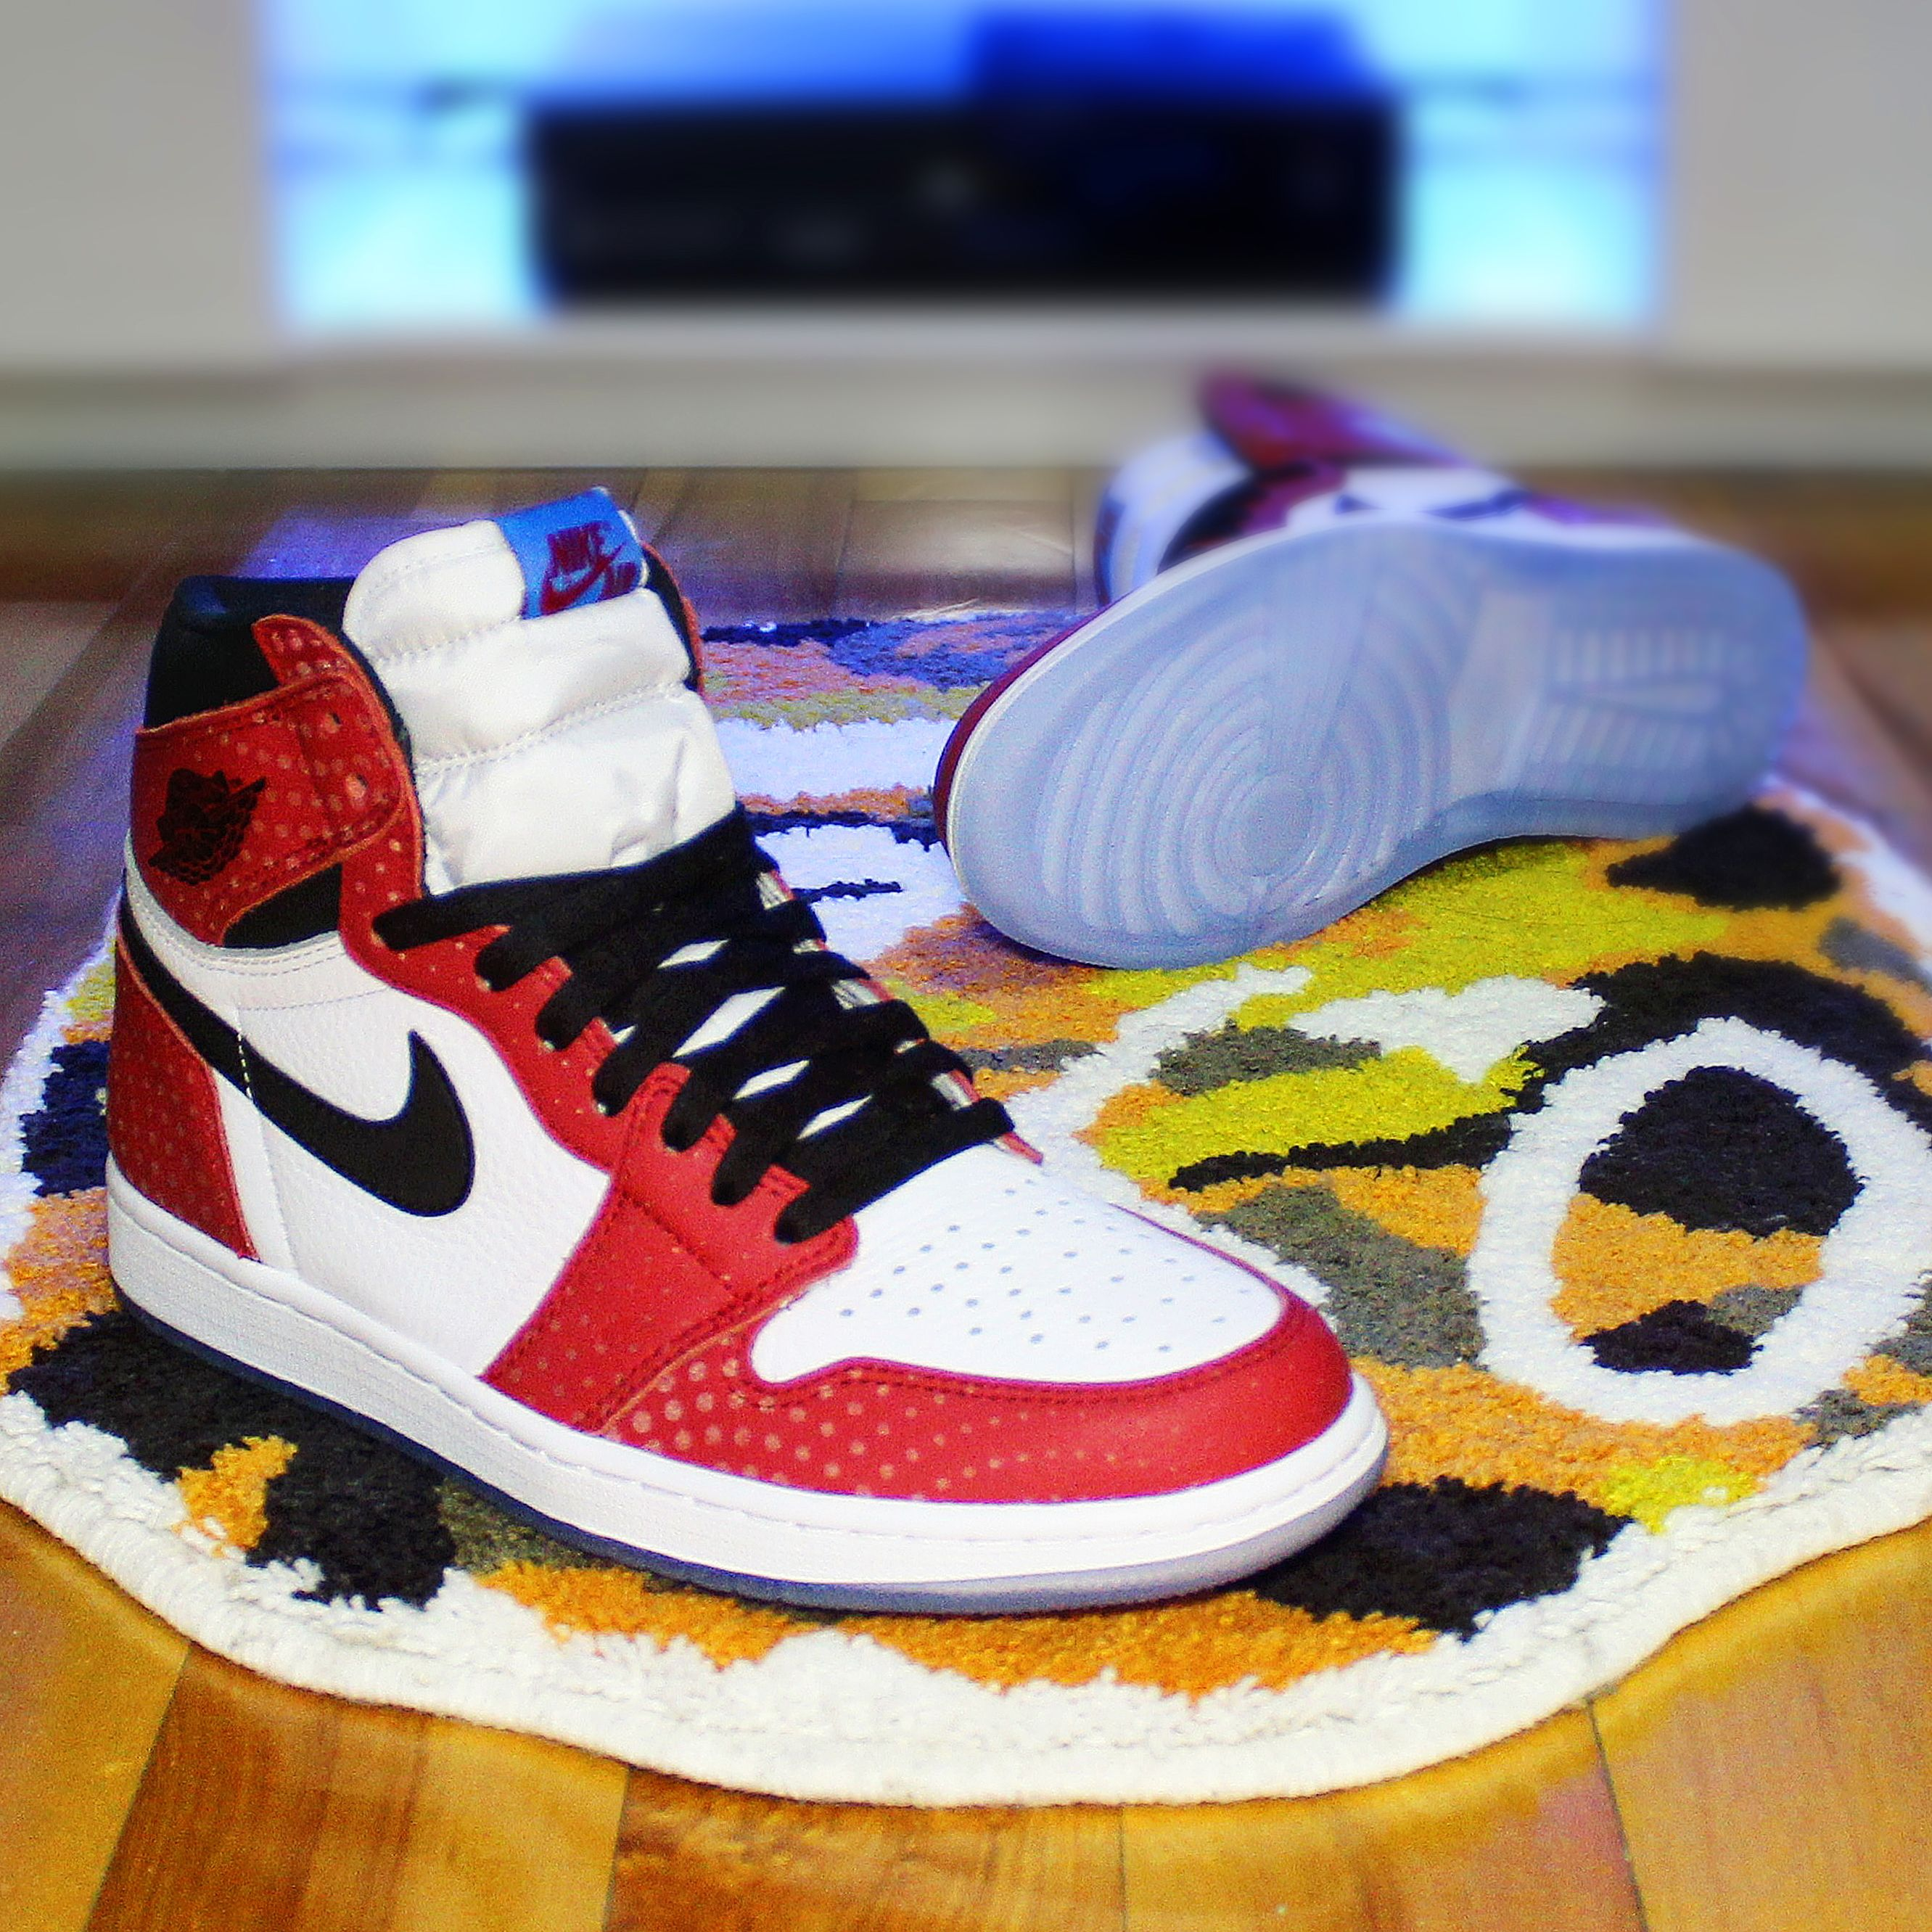 4b10aa451549 Tag a friend who will cop Go check out my Air Jordan Retro 1 High OG   Spider-Verse  on feet